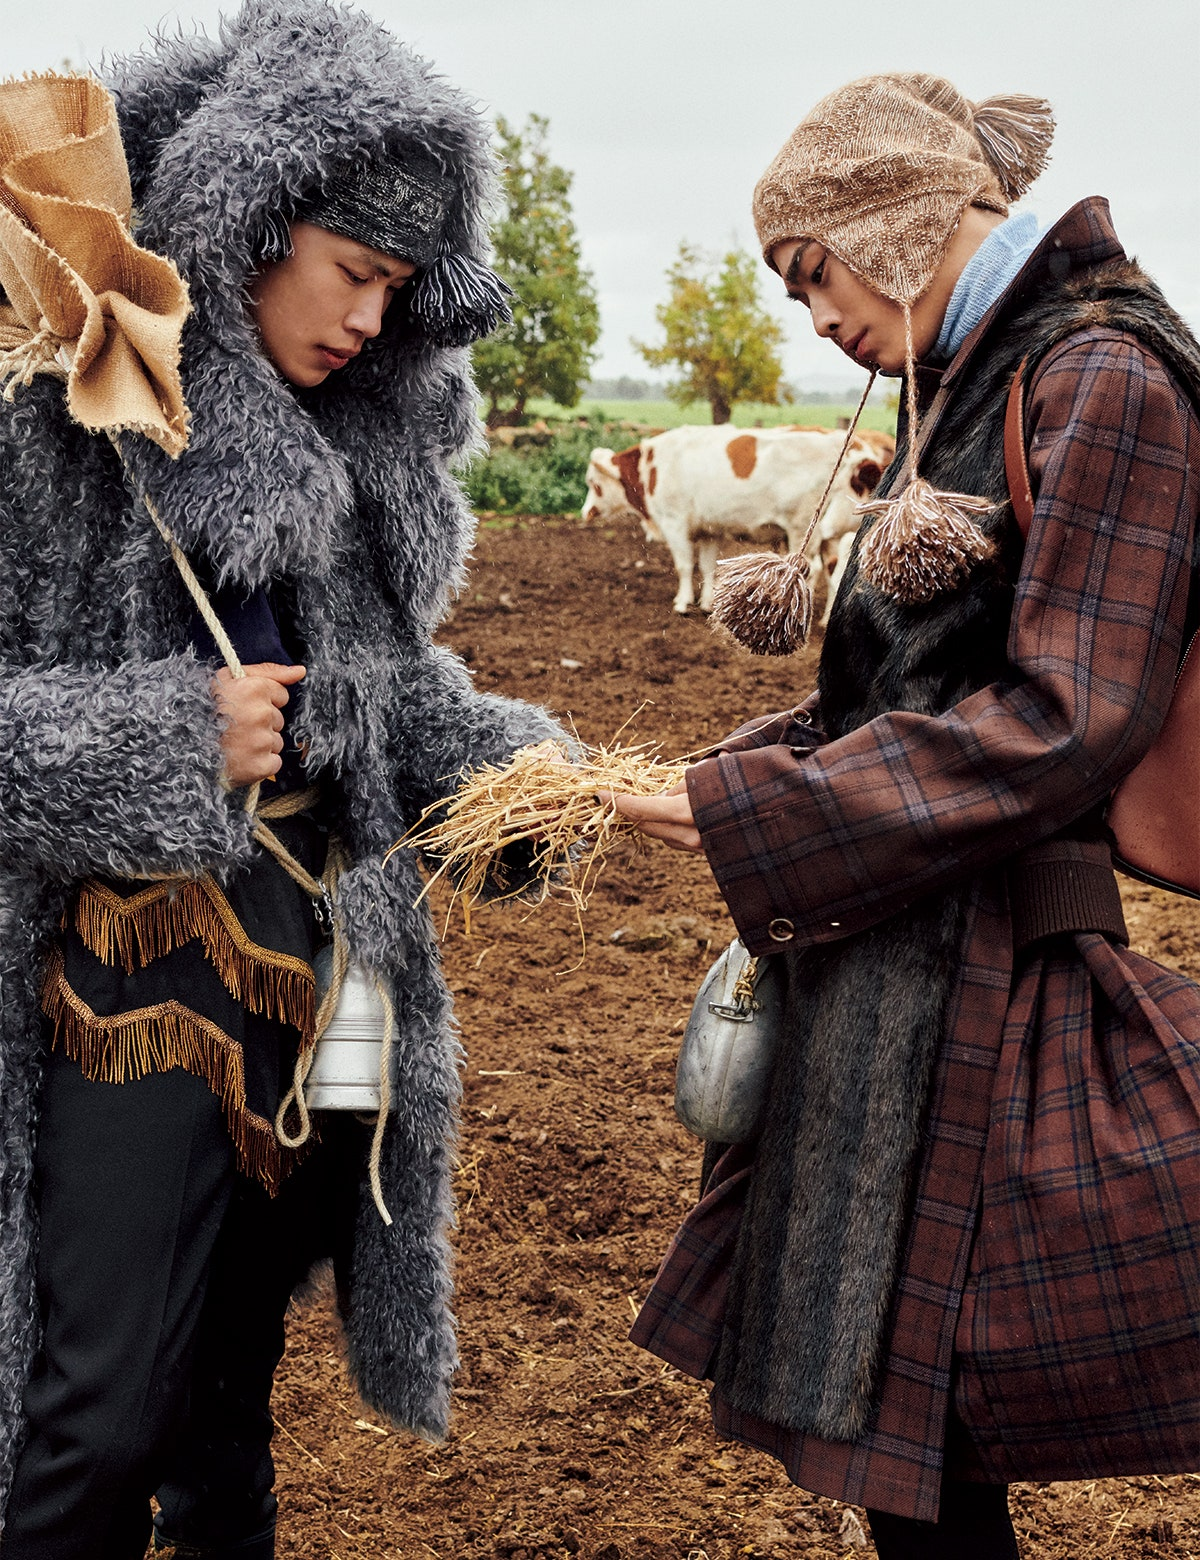 ''Nomad'' by Giampaolo Sgura for Vogue Japan September 2021